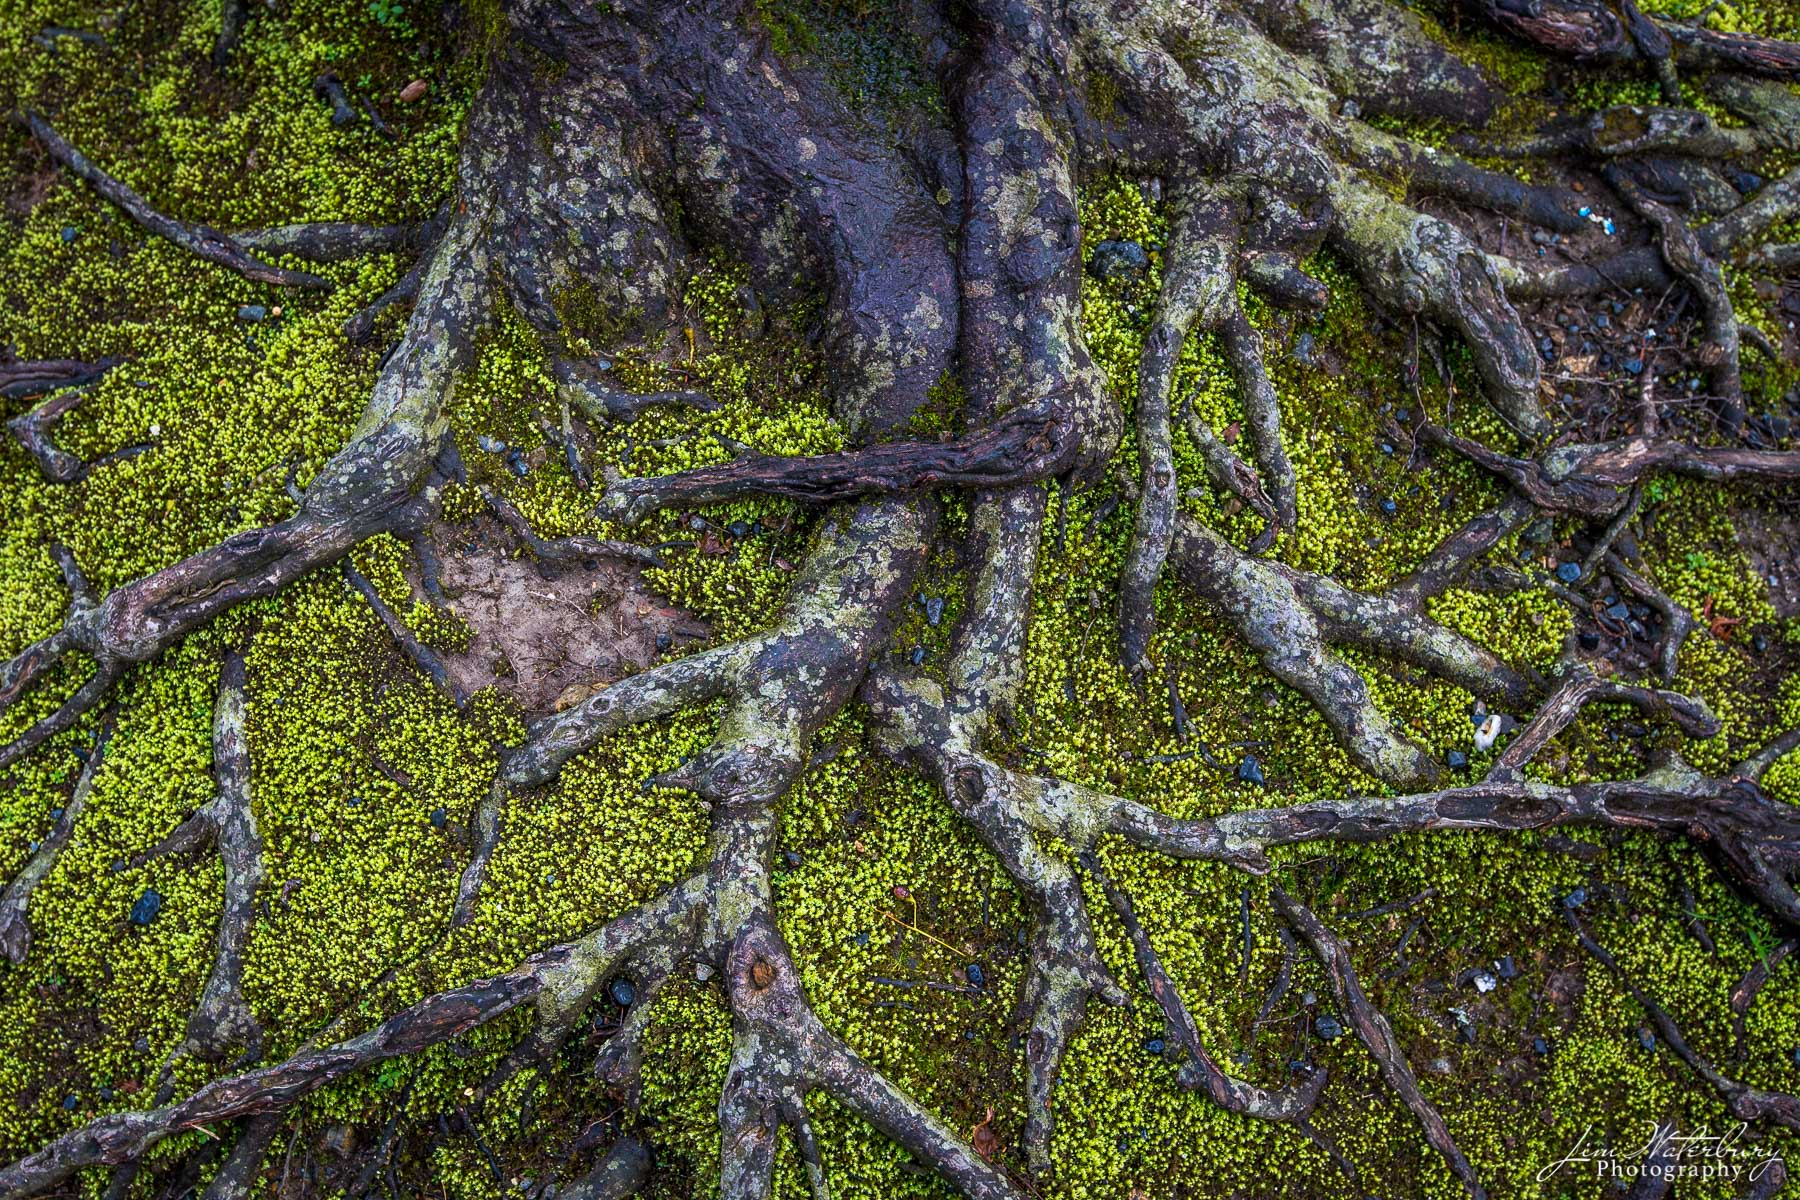 Ancient tree roots form an intricate web, in a mossy forest floor outside of Kyoto, Japan.